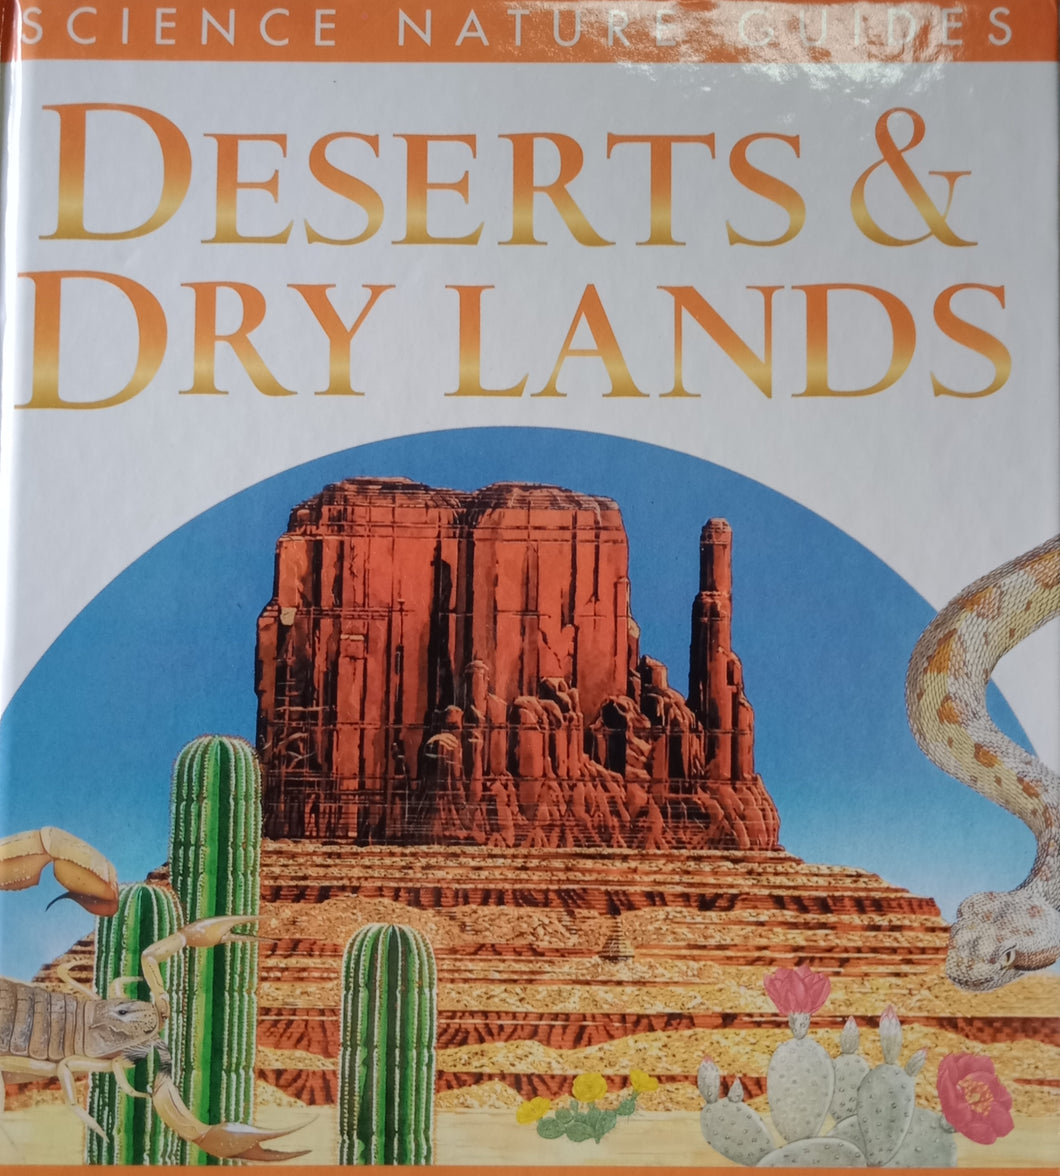 Desserts and Dry Lands